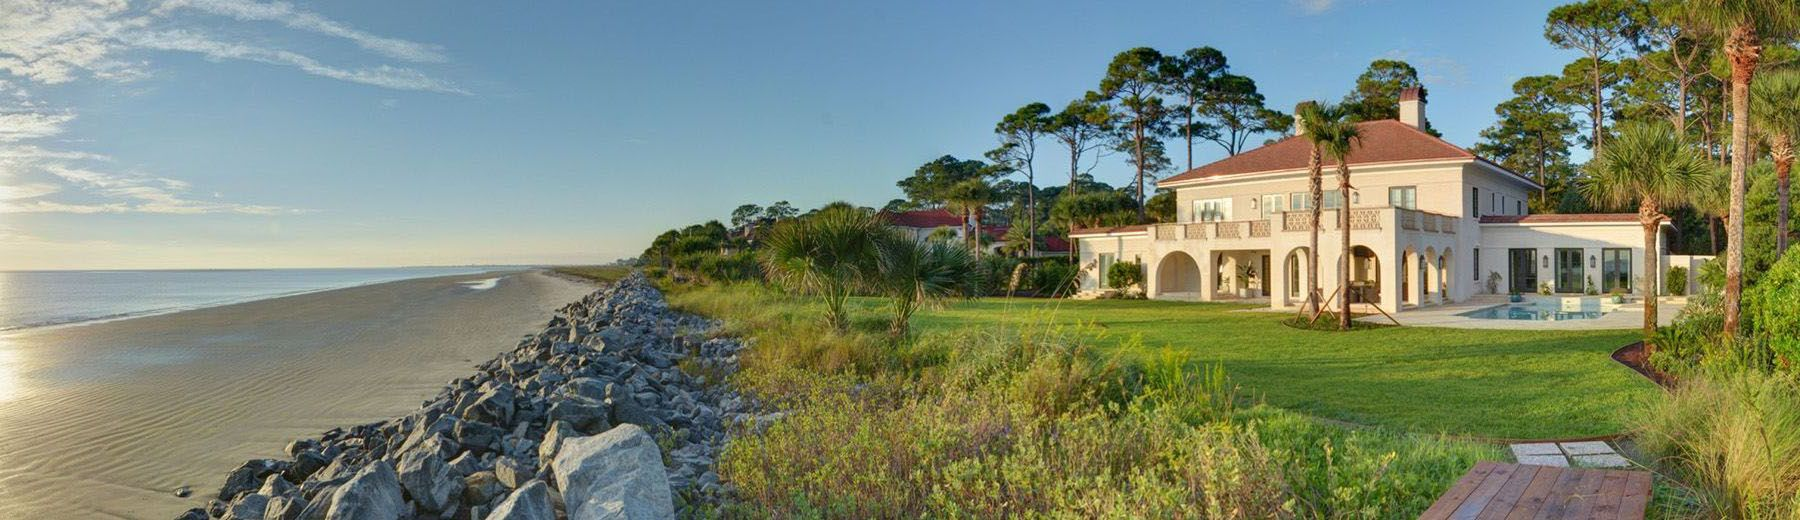 Sea Island Cottages by the Atlantic Ocean